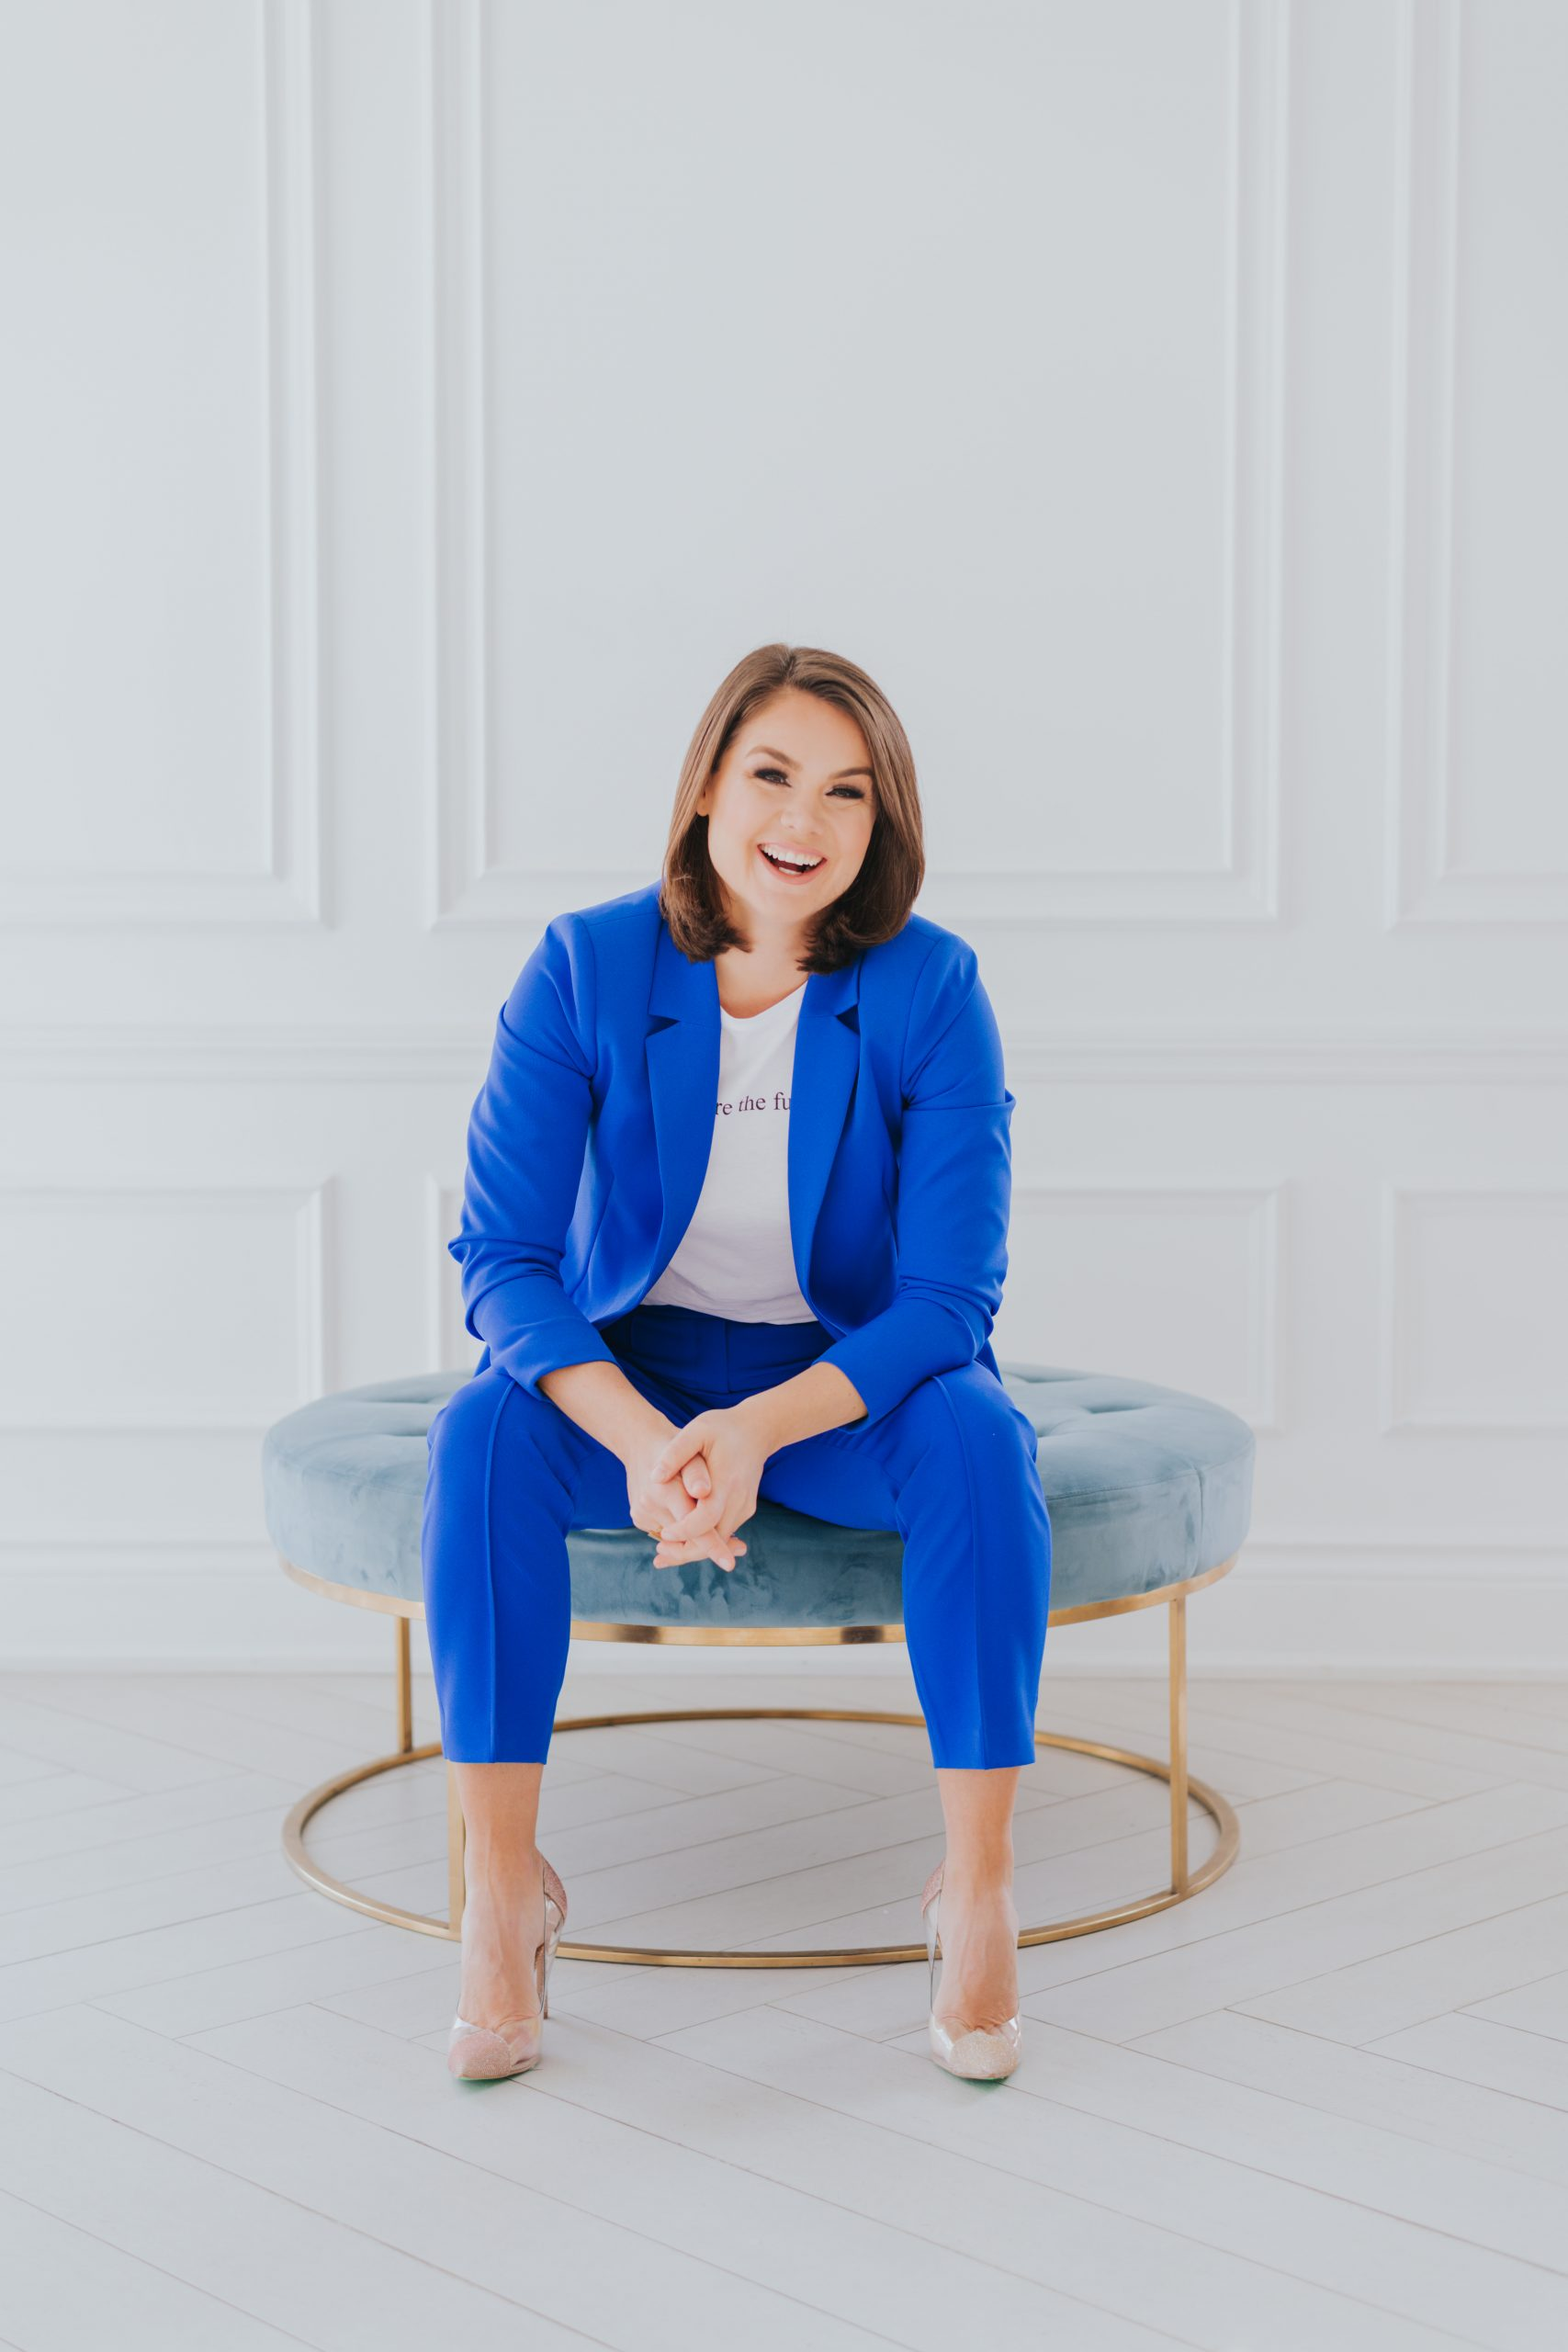 Jennifer Hargreaves is the founder and CEO if tellent; an online resource and technology platform dedicated to helping professional women and employers find, fill and create flexible work.